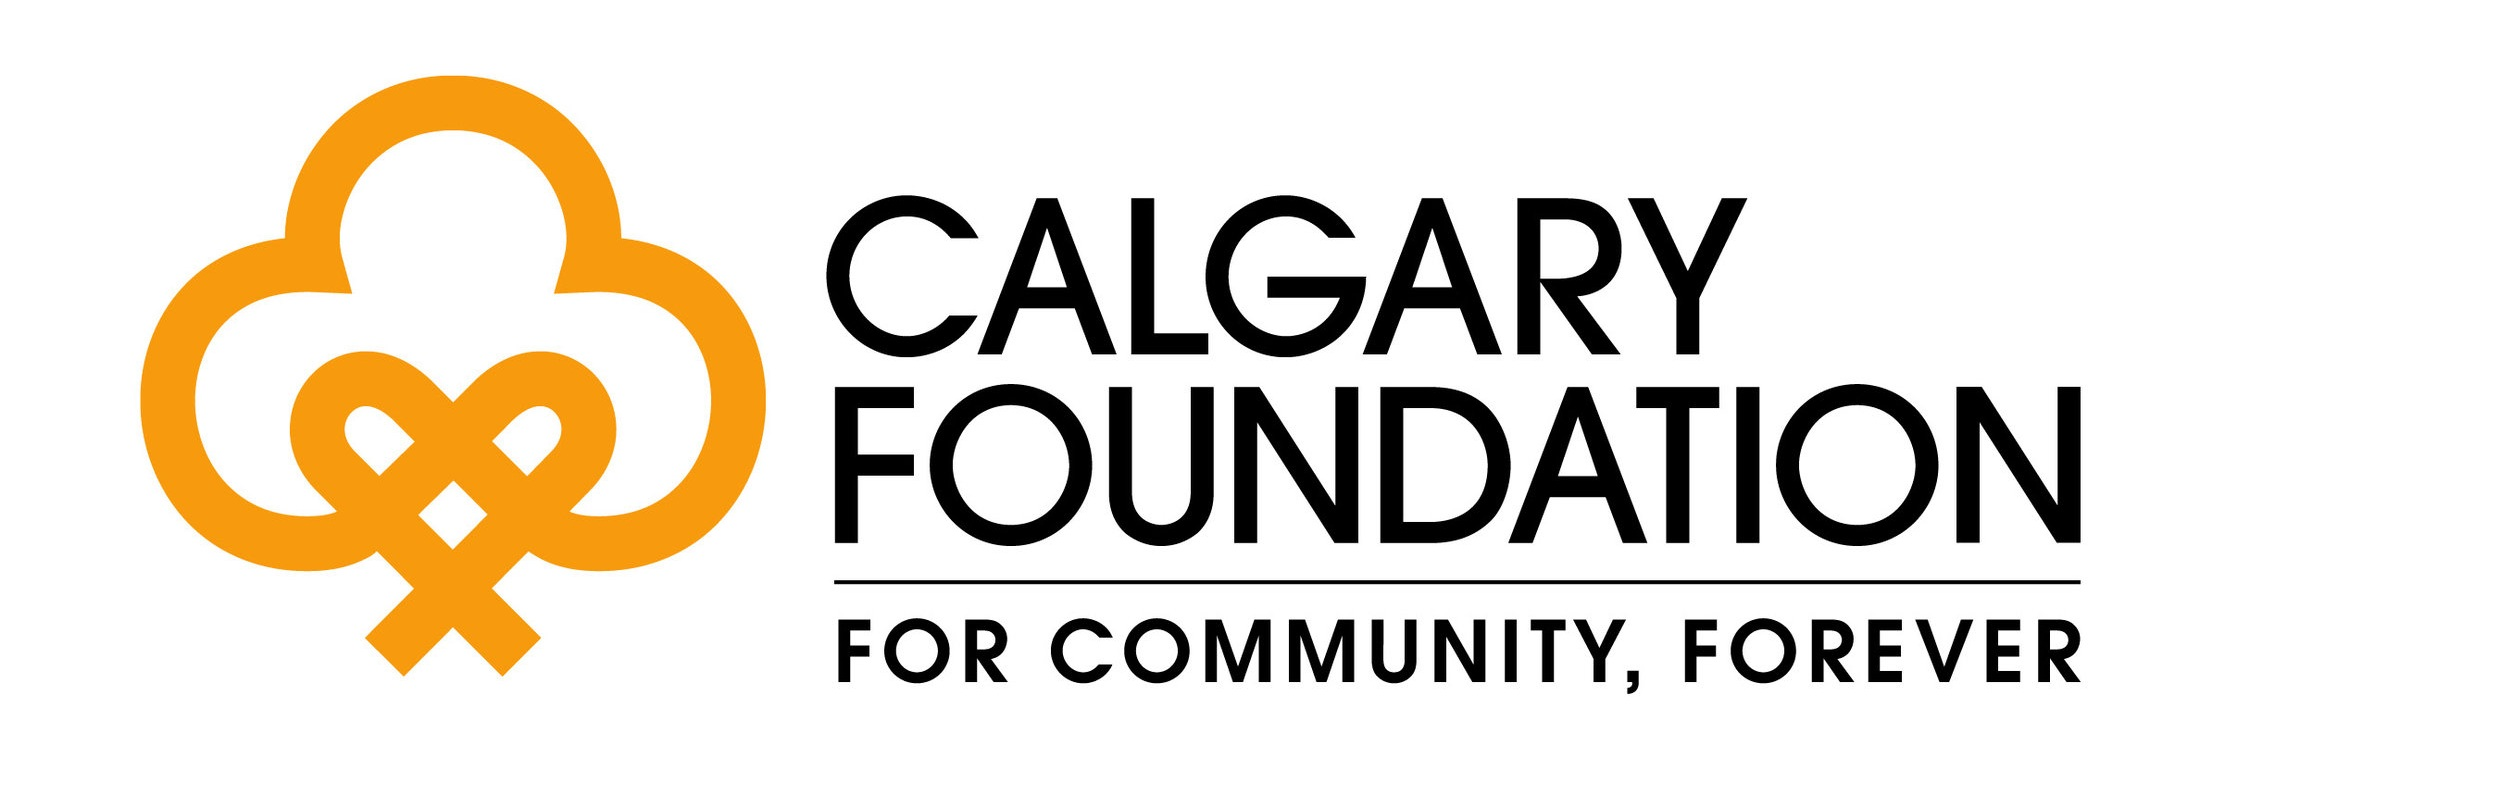 calgary+foundation+logo+-+LARGER+tagline+CMYK.jpg